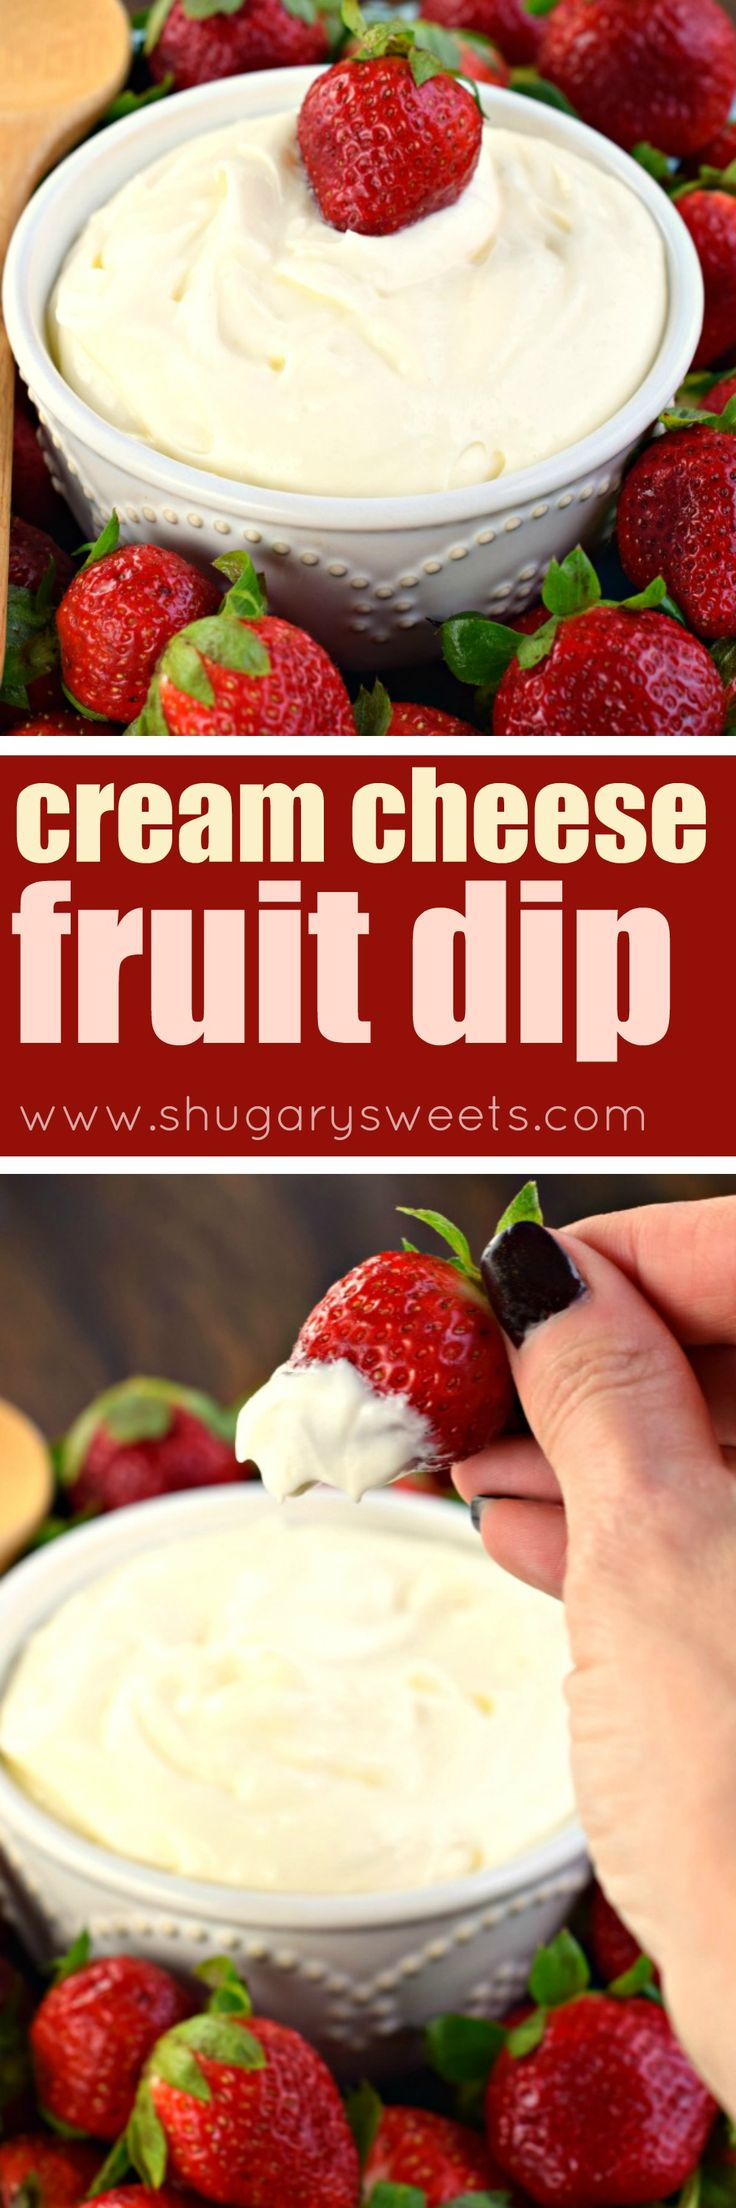 Three ingredient Cream Cheese Fruit Dip! A sweet treat to serve with berries and apples!